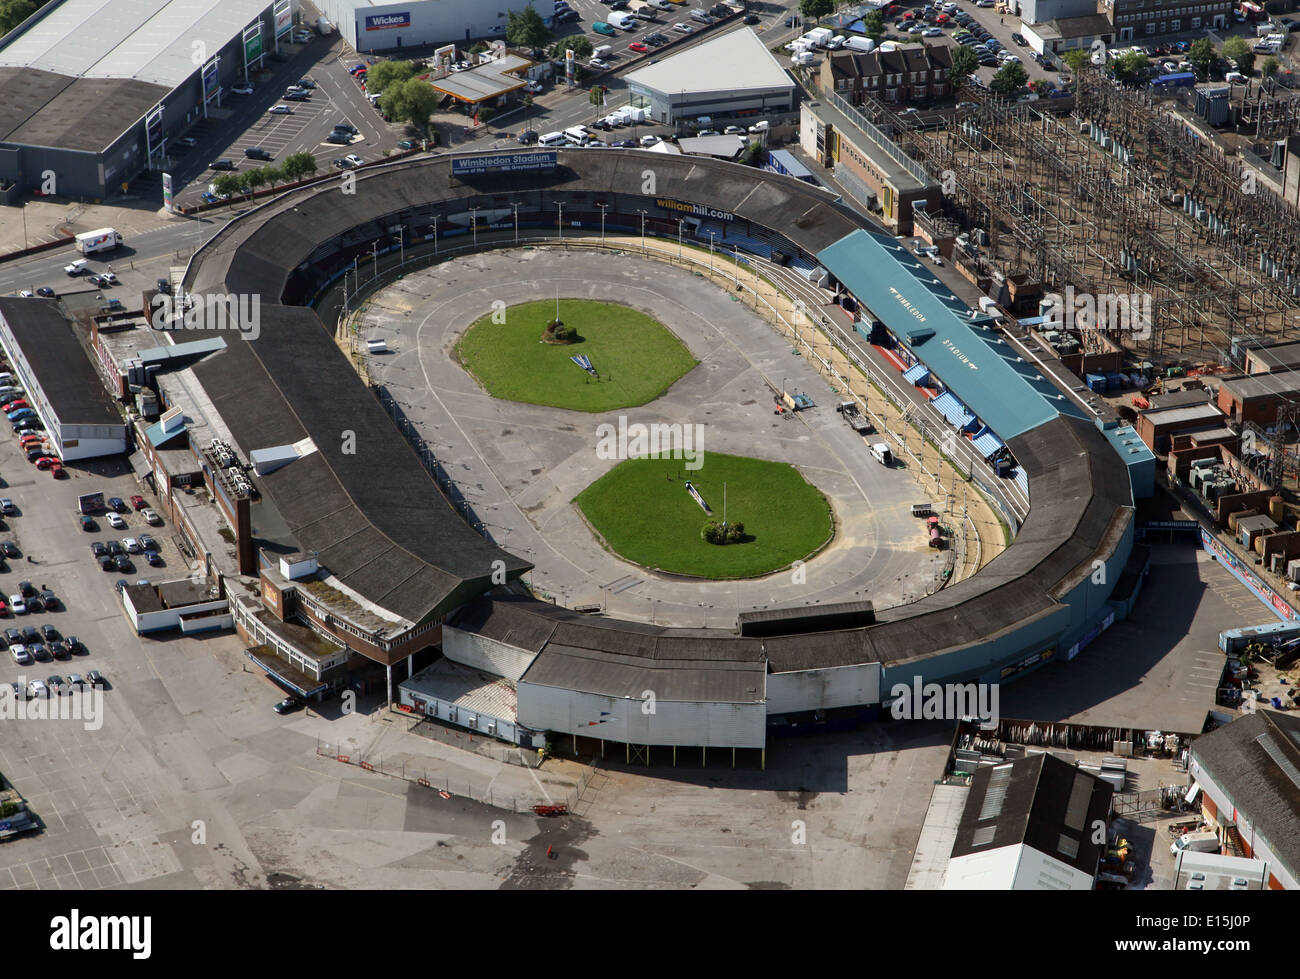 aerial view of Wimbledon Greyhound Stadium in South West London, also used for speedway and stock car racing - Stock Image